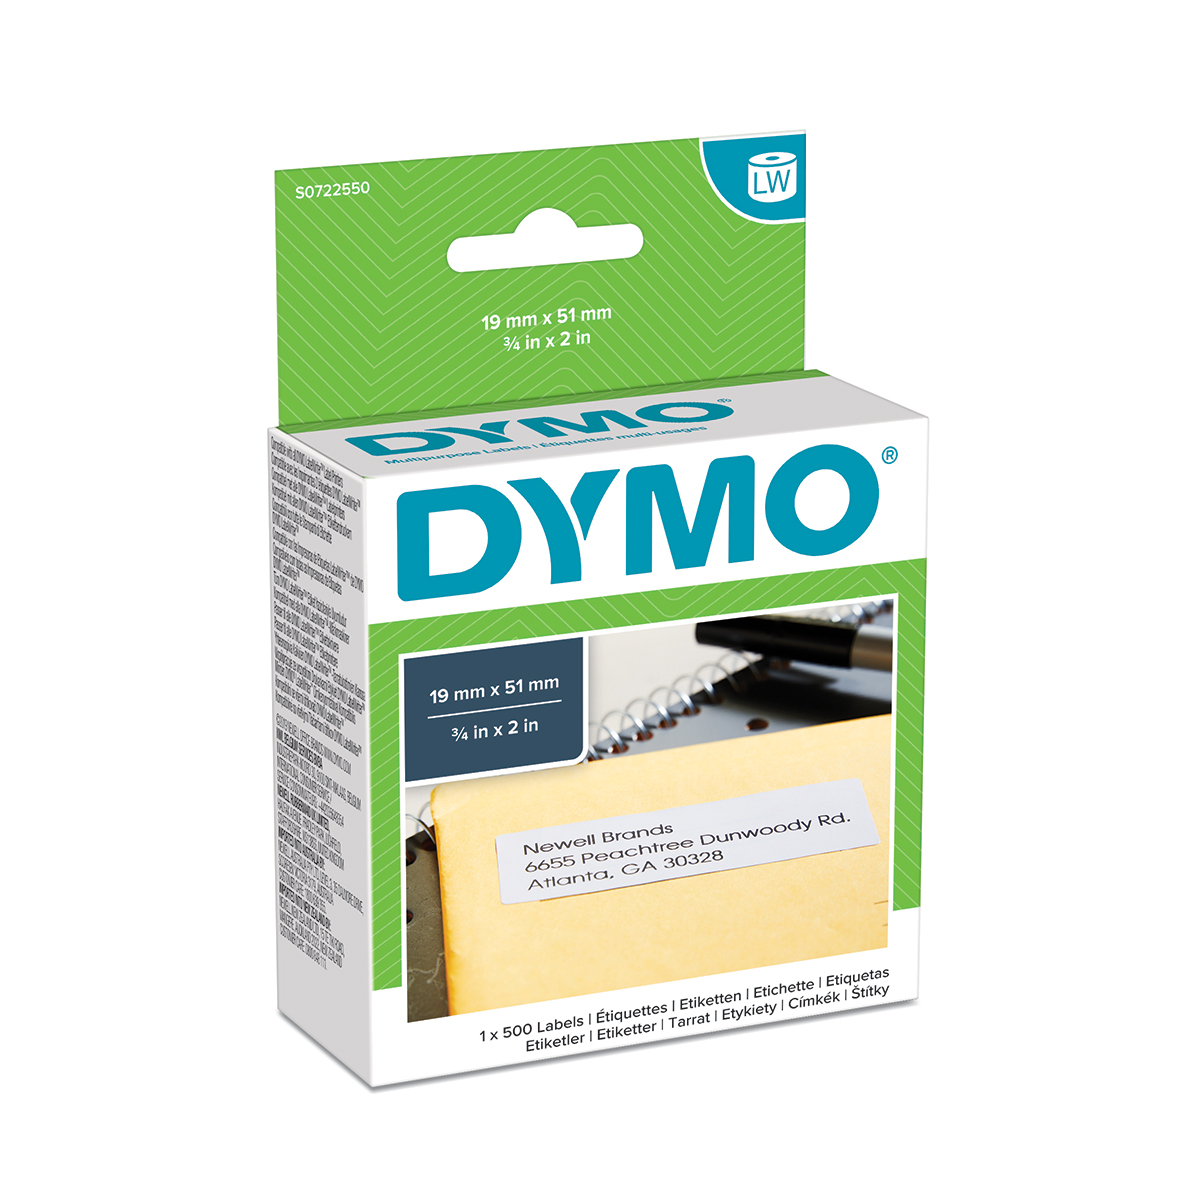 Dymo 11355 19mm x 51mm Multi Purpose Labels Black on White